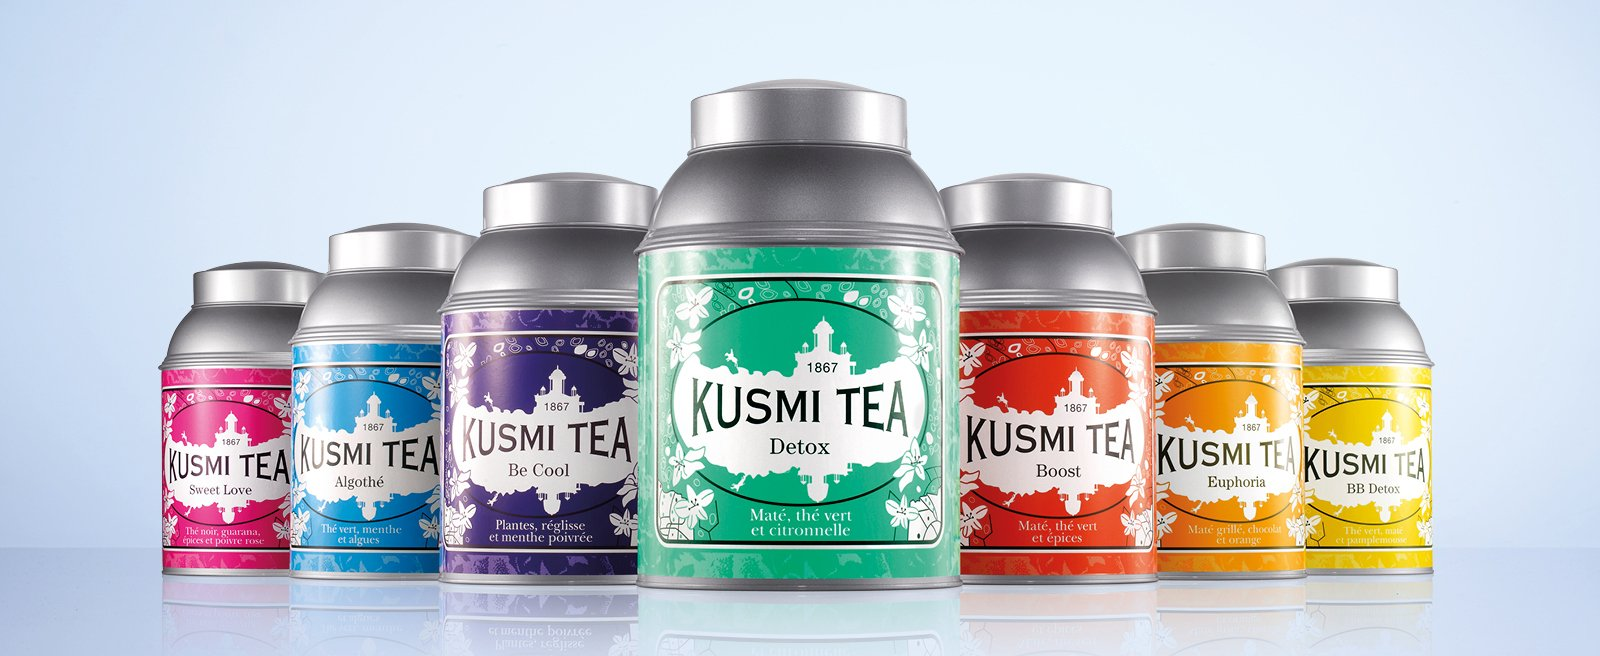 Kusmi Tea - Honfleur Normandy Outlet